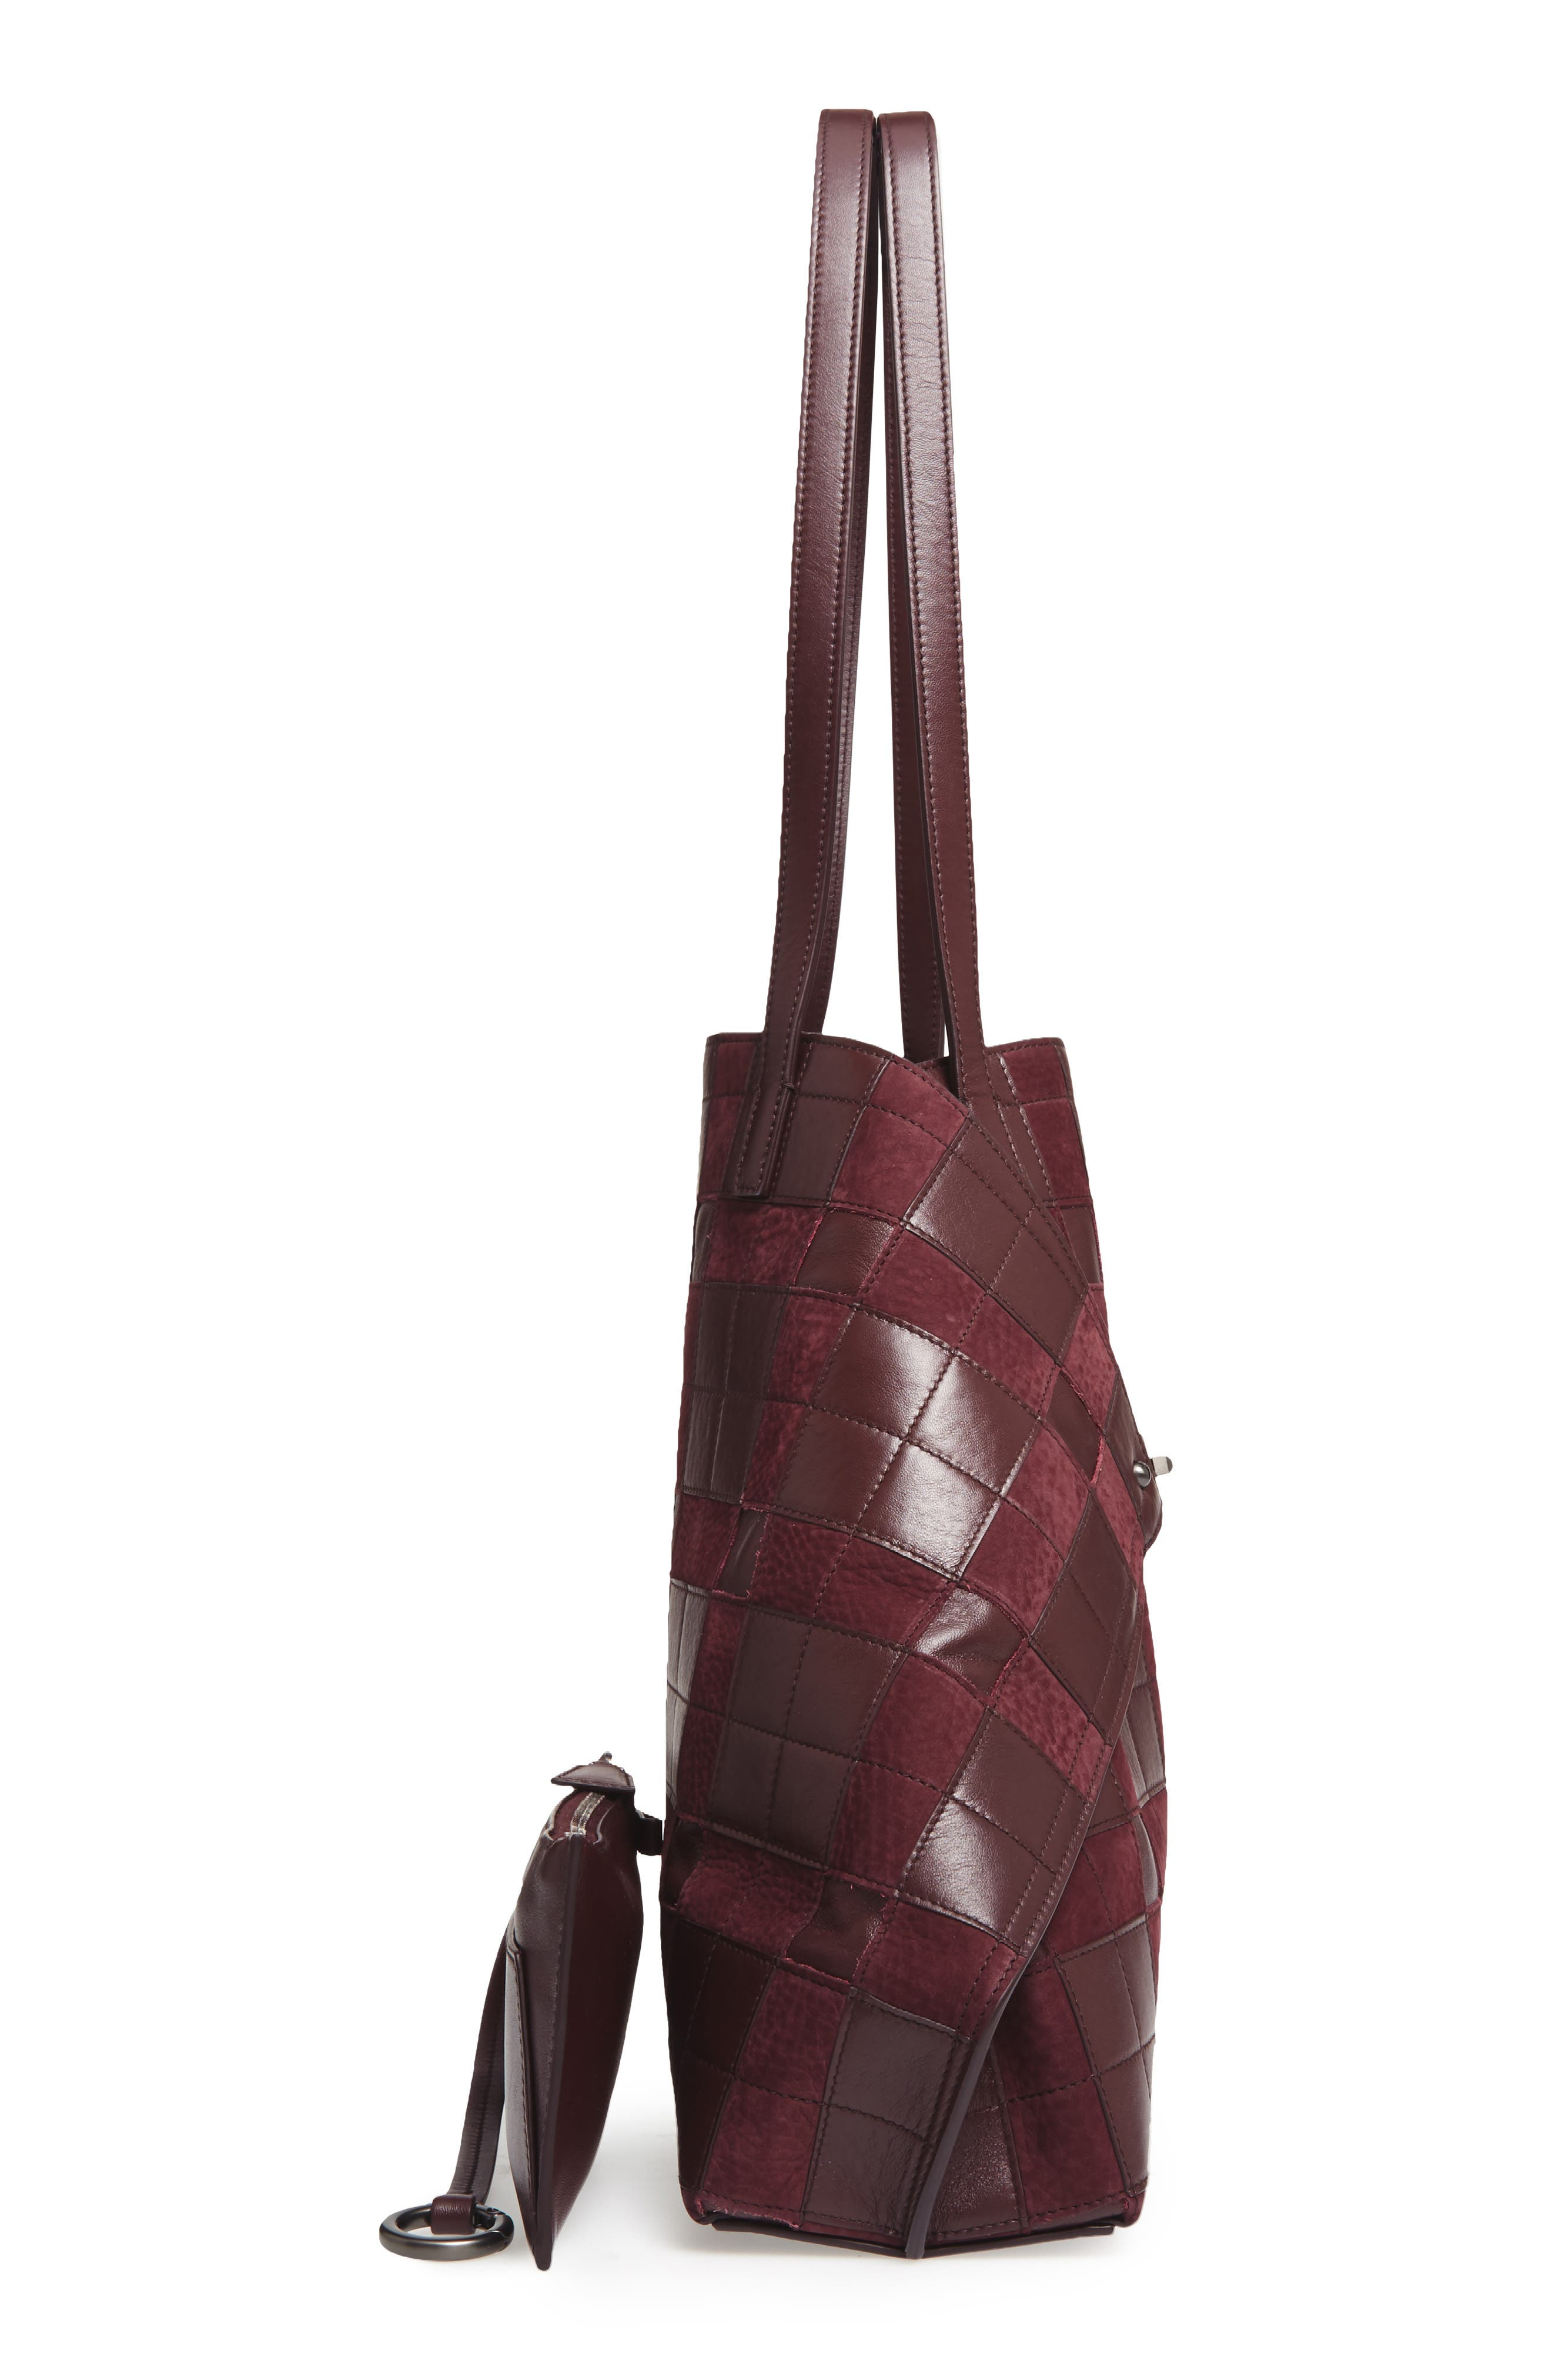 Medium AI Leather Shoulder Tote,                             Alternate thumbnail 4, color,                             Burgundy